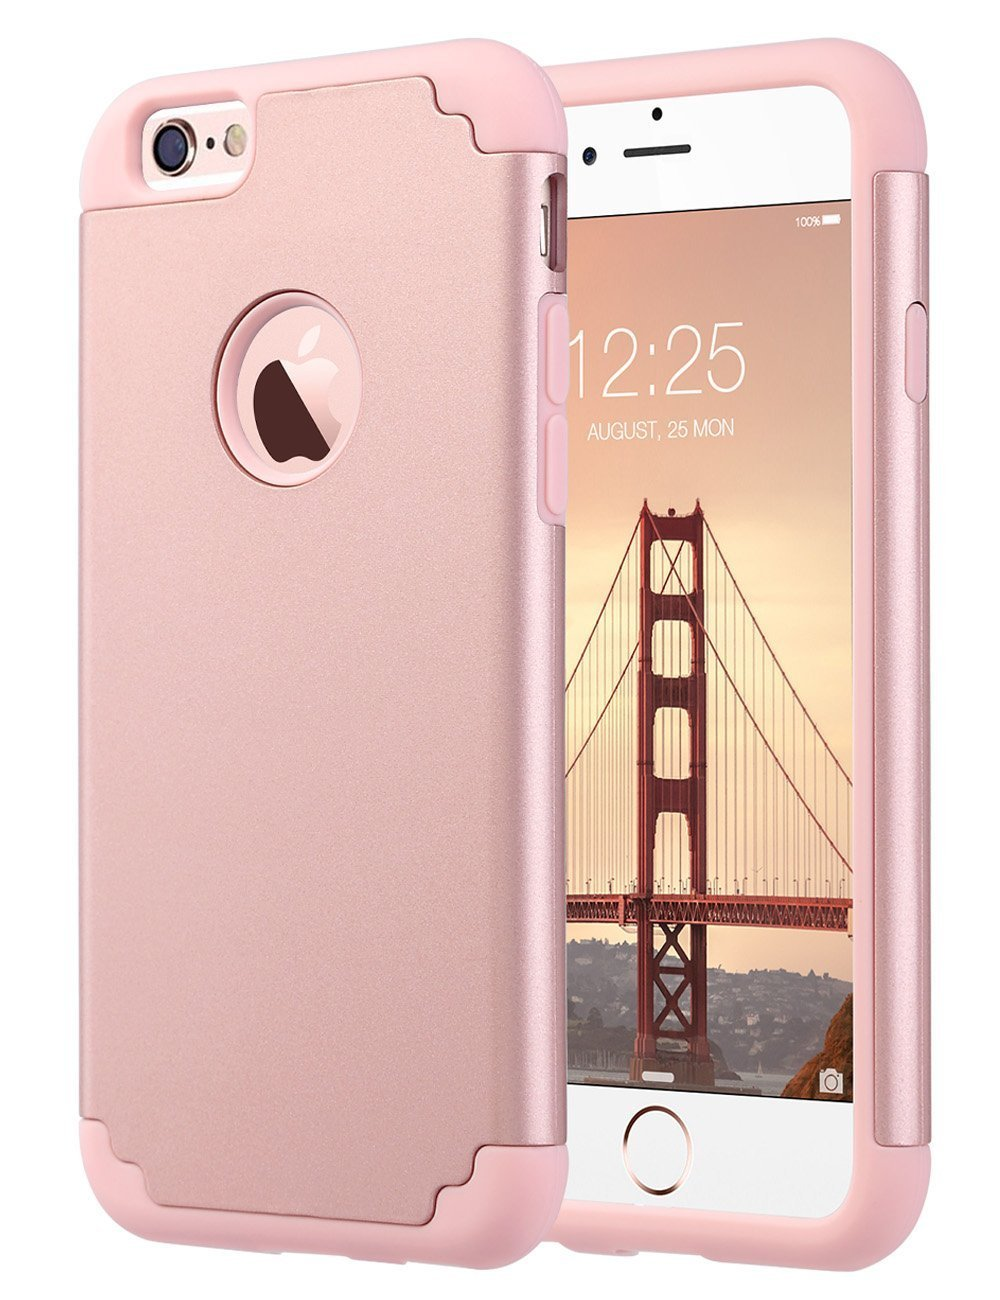 iphone 6 case uk